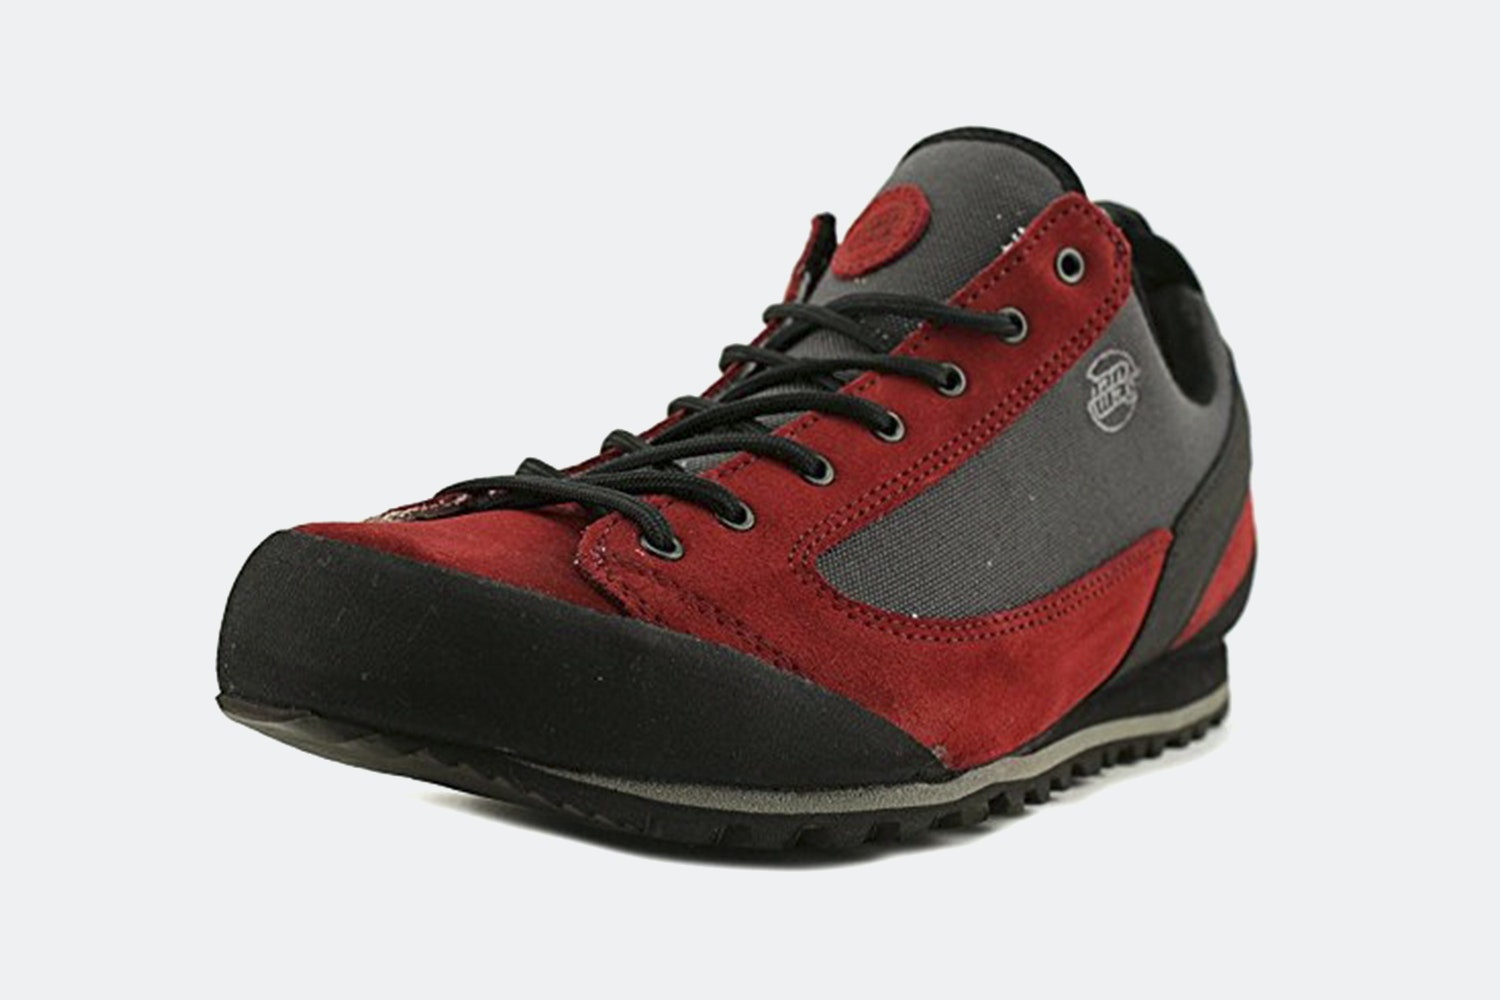 Hanwag Salt Rock Shoe